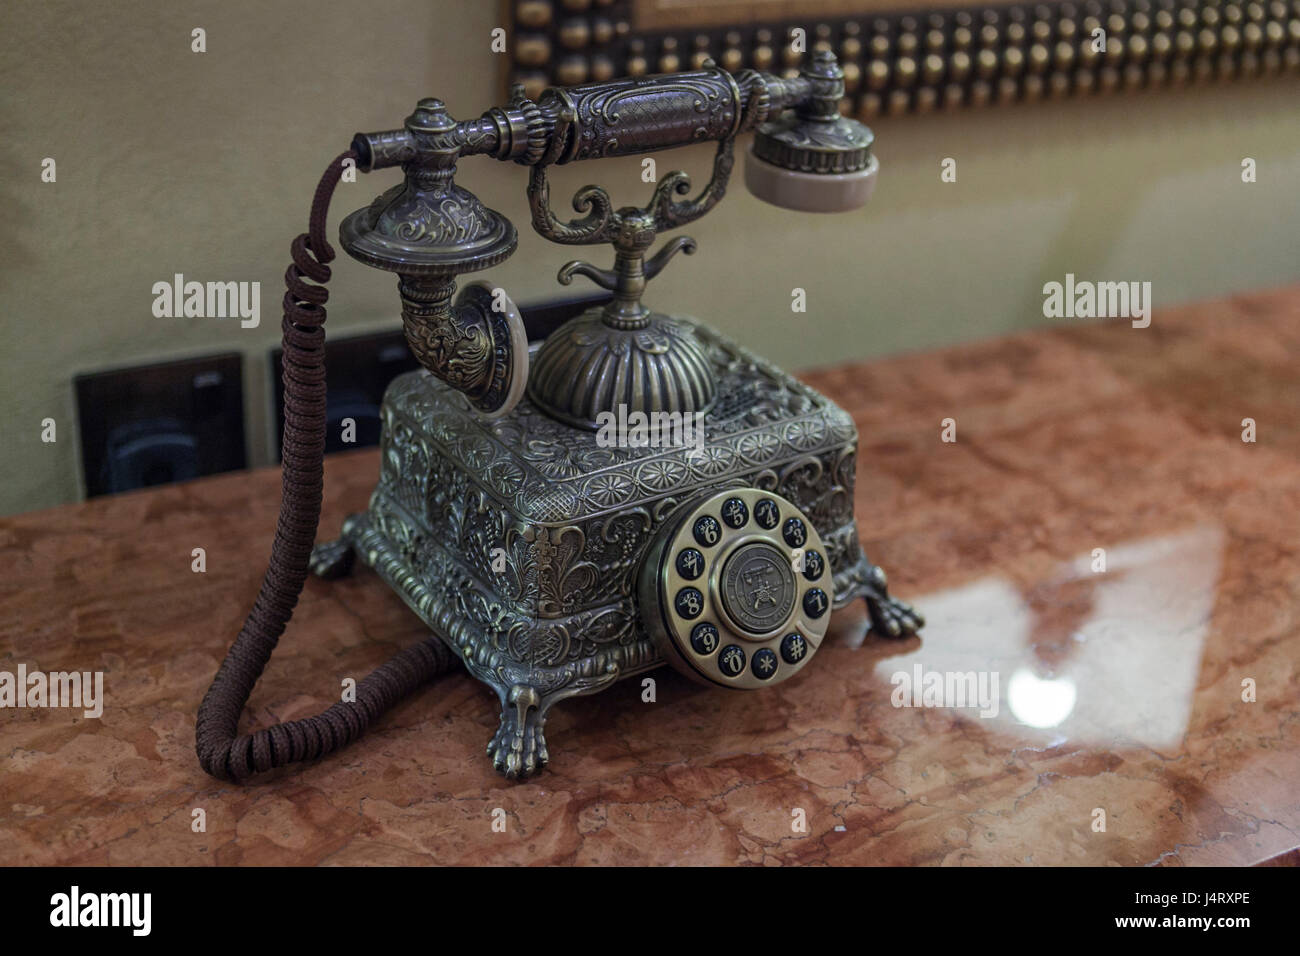 ornate, decorative telephone but also functional and operational Stock Photo